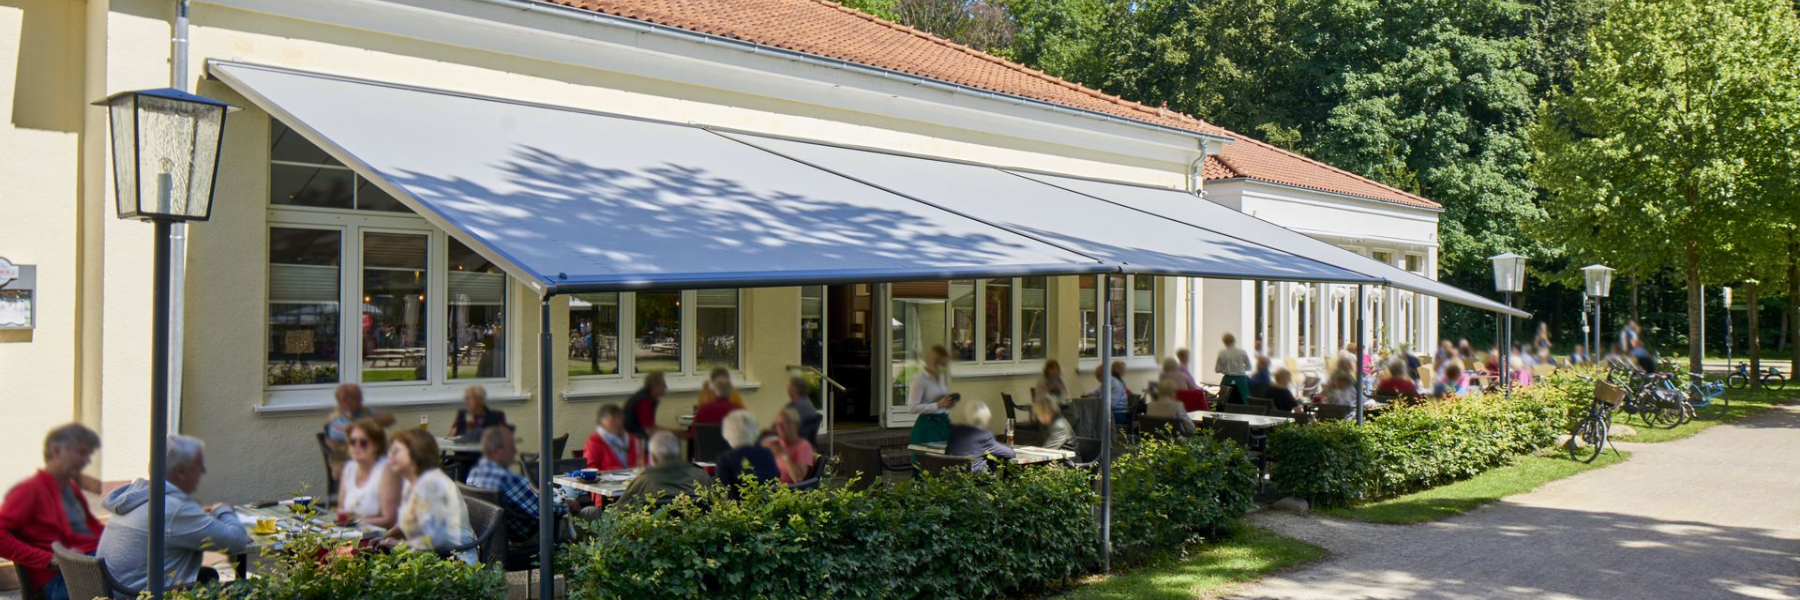 <p>Markilux Pergola Cafe Terrace Covered Hospitality Area Outdoor Cafe setting</p> <p></p> <p>Pergola – Café outdoor terrace setting – keeping your customers protected from all-weathers 365 days of the year</p>